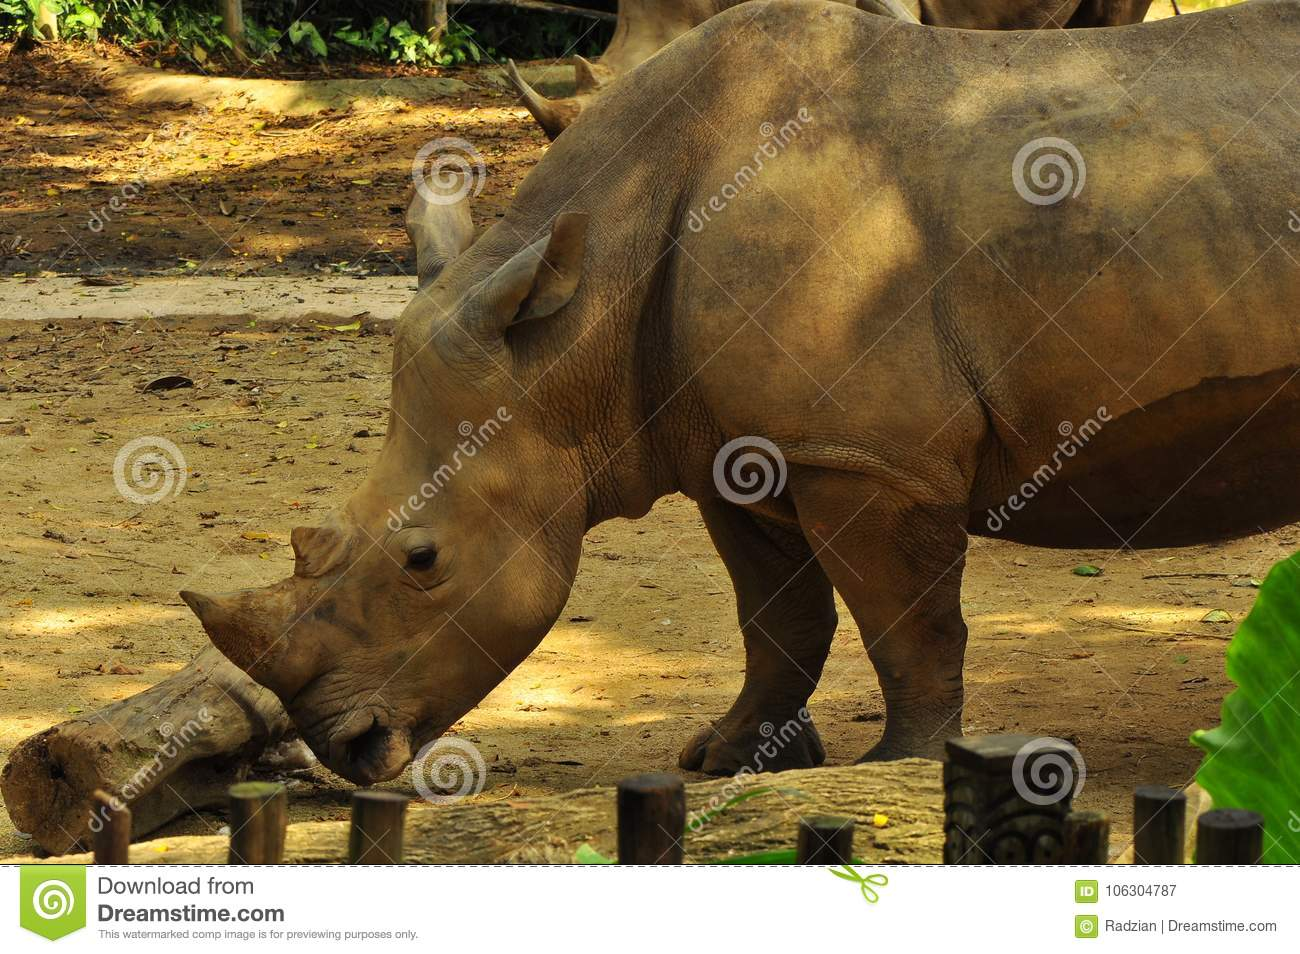 Rhinoceros in Singapore Zoo